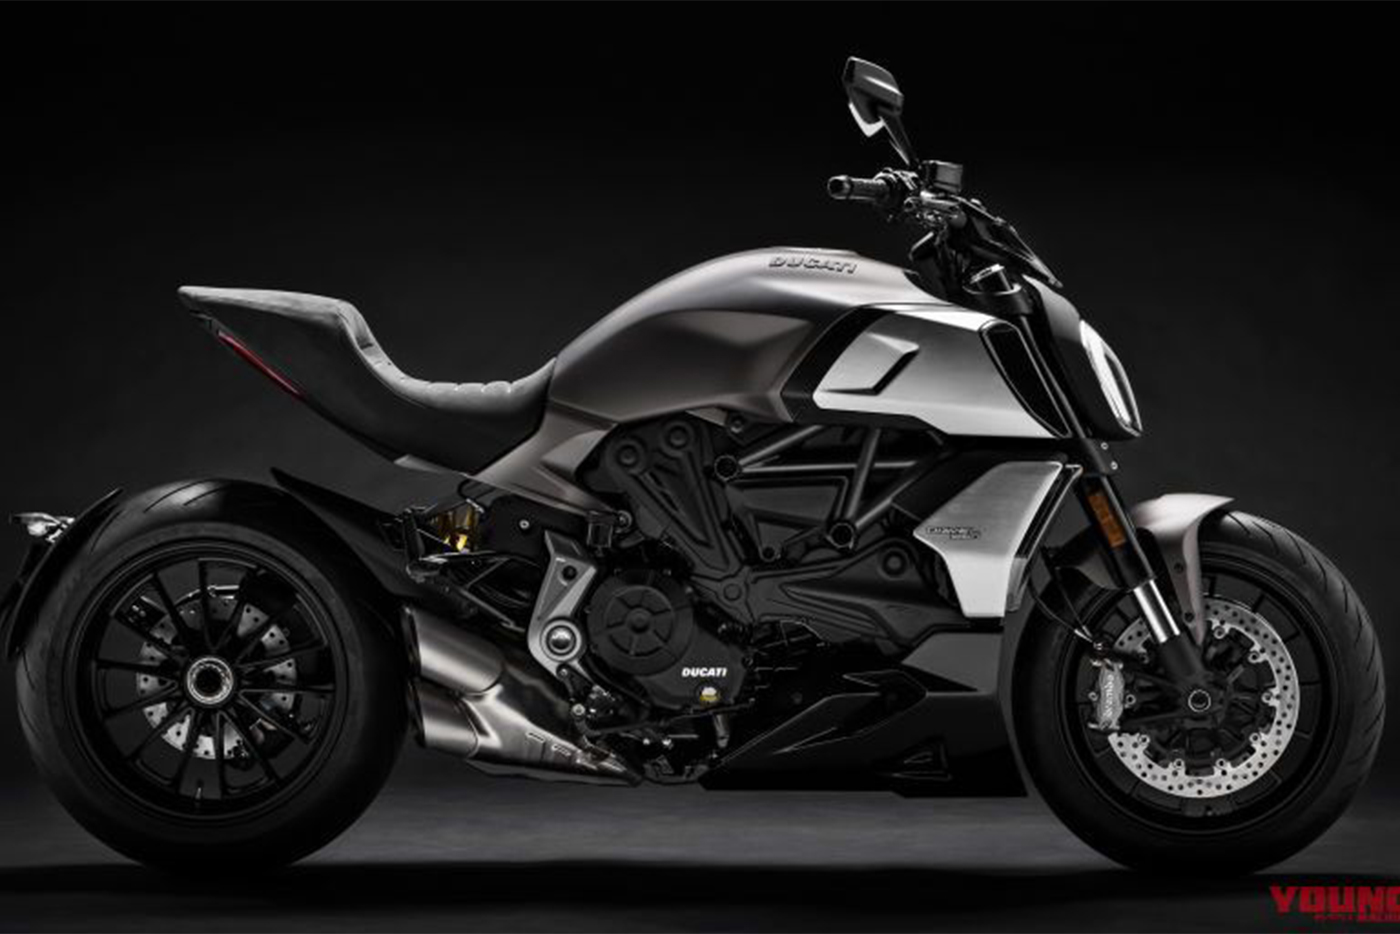 my19-diavel-1260-uc69971-high-800x512.jpg